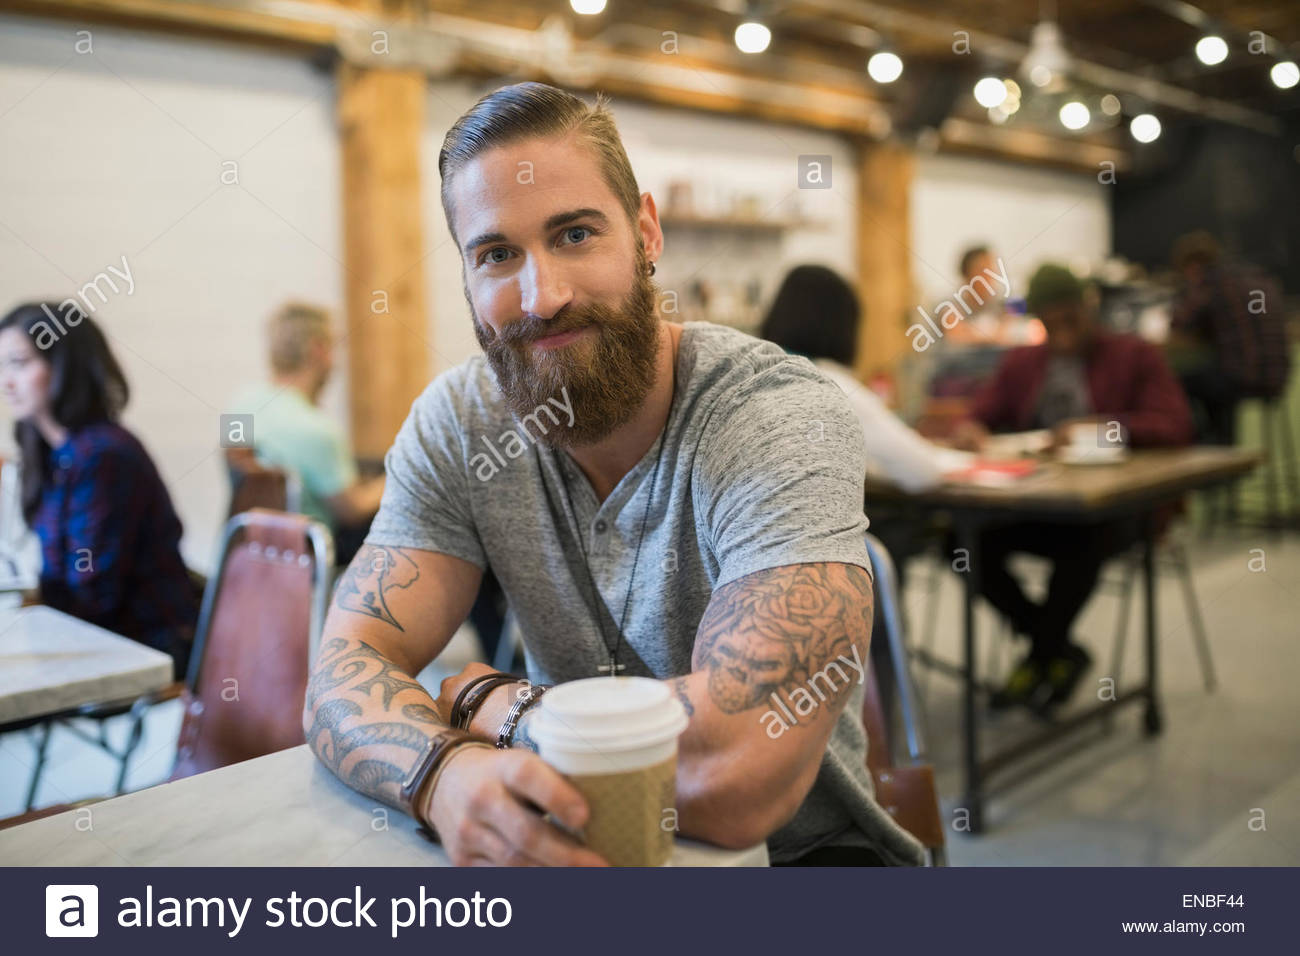 4991e67f5 Portrait confident bearded man with tattoos drinking coffee Stock ...